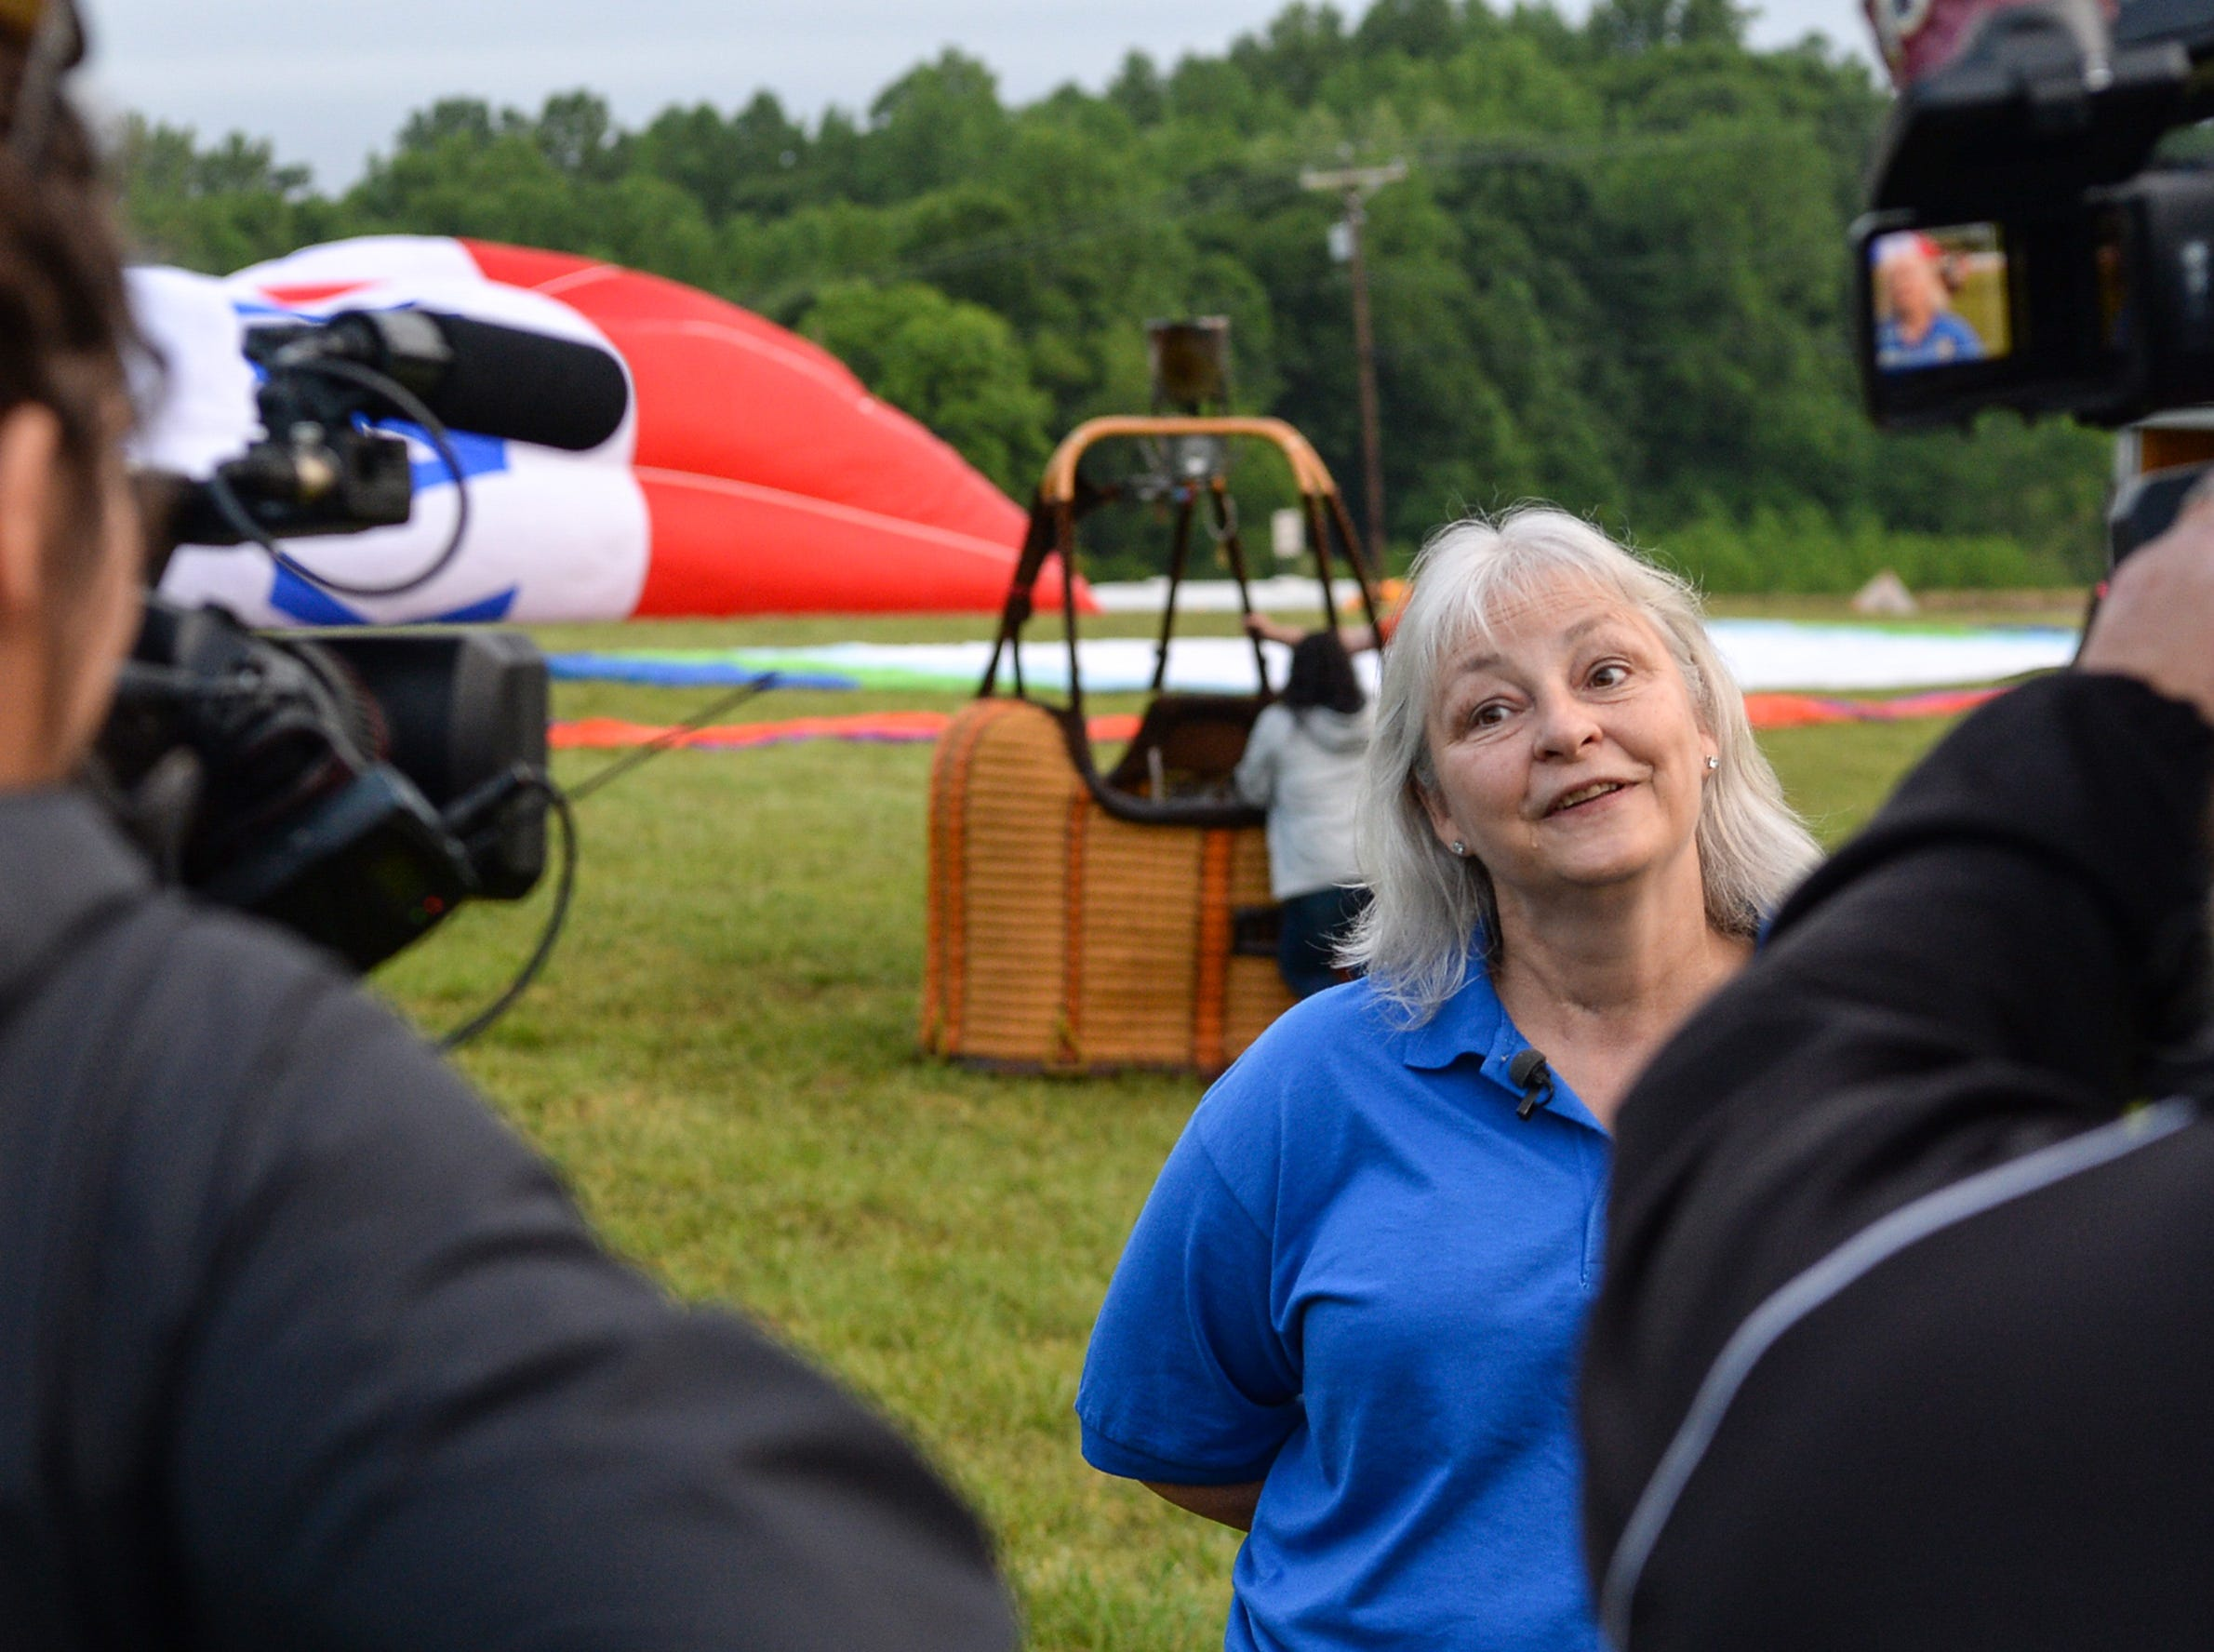 "Angela Stringer, executive director of the Cancer Association of Anderson speaks to media before a morning flight over Rocky River Plantation for the Cancer Association of Anderson Hot Air Balloon Affair in Anderson Friday. The event fundraiser helps the non-profit with helping cancer patients with financial needs and support, which the group executive director Angela Stringer said had 5,000 contacts. ""This is an opportunity for cancer patients, survivors, and their families and caregivers to come out and have a weekend of just peace, and enjoy the balloons. It's just a way to rise above cancer,"" cancer survivor Stringer said."